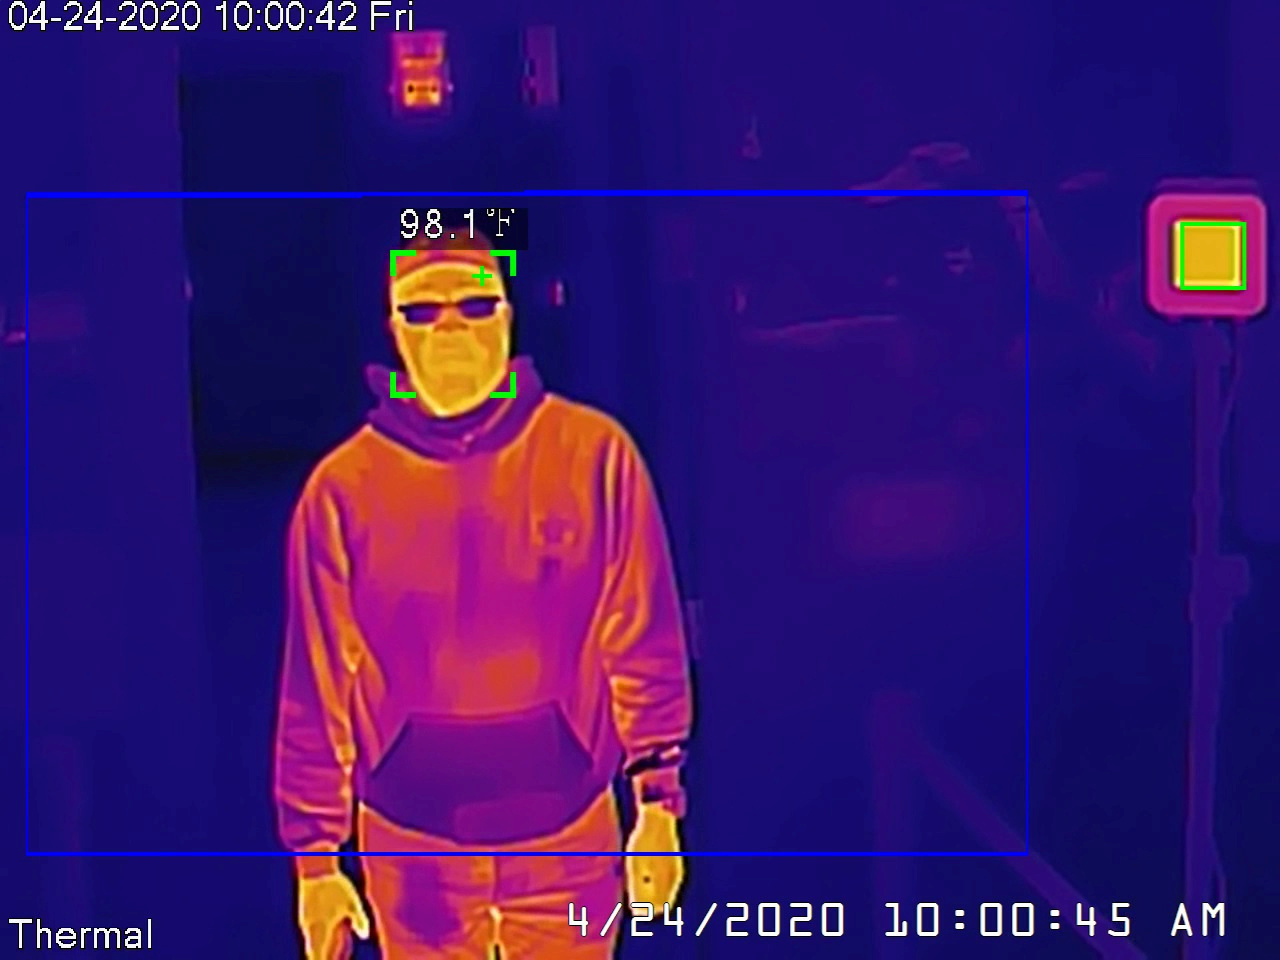 Dahua thermal camera